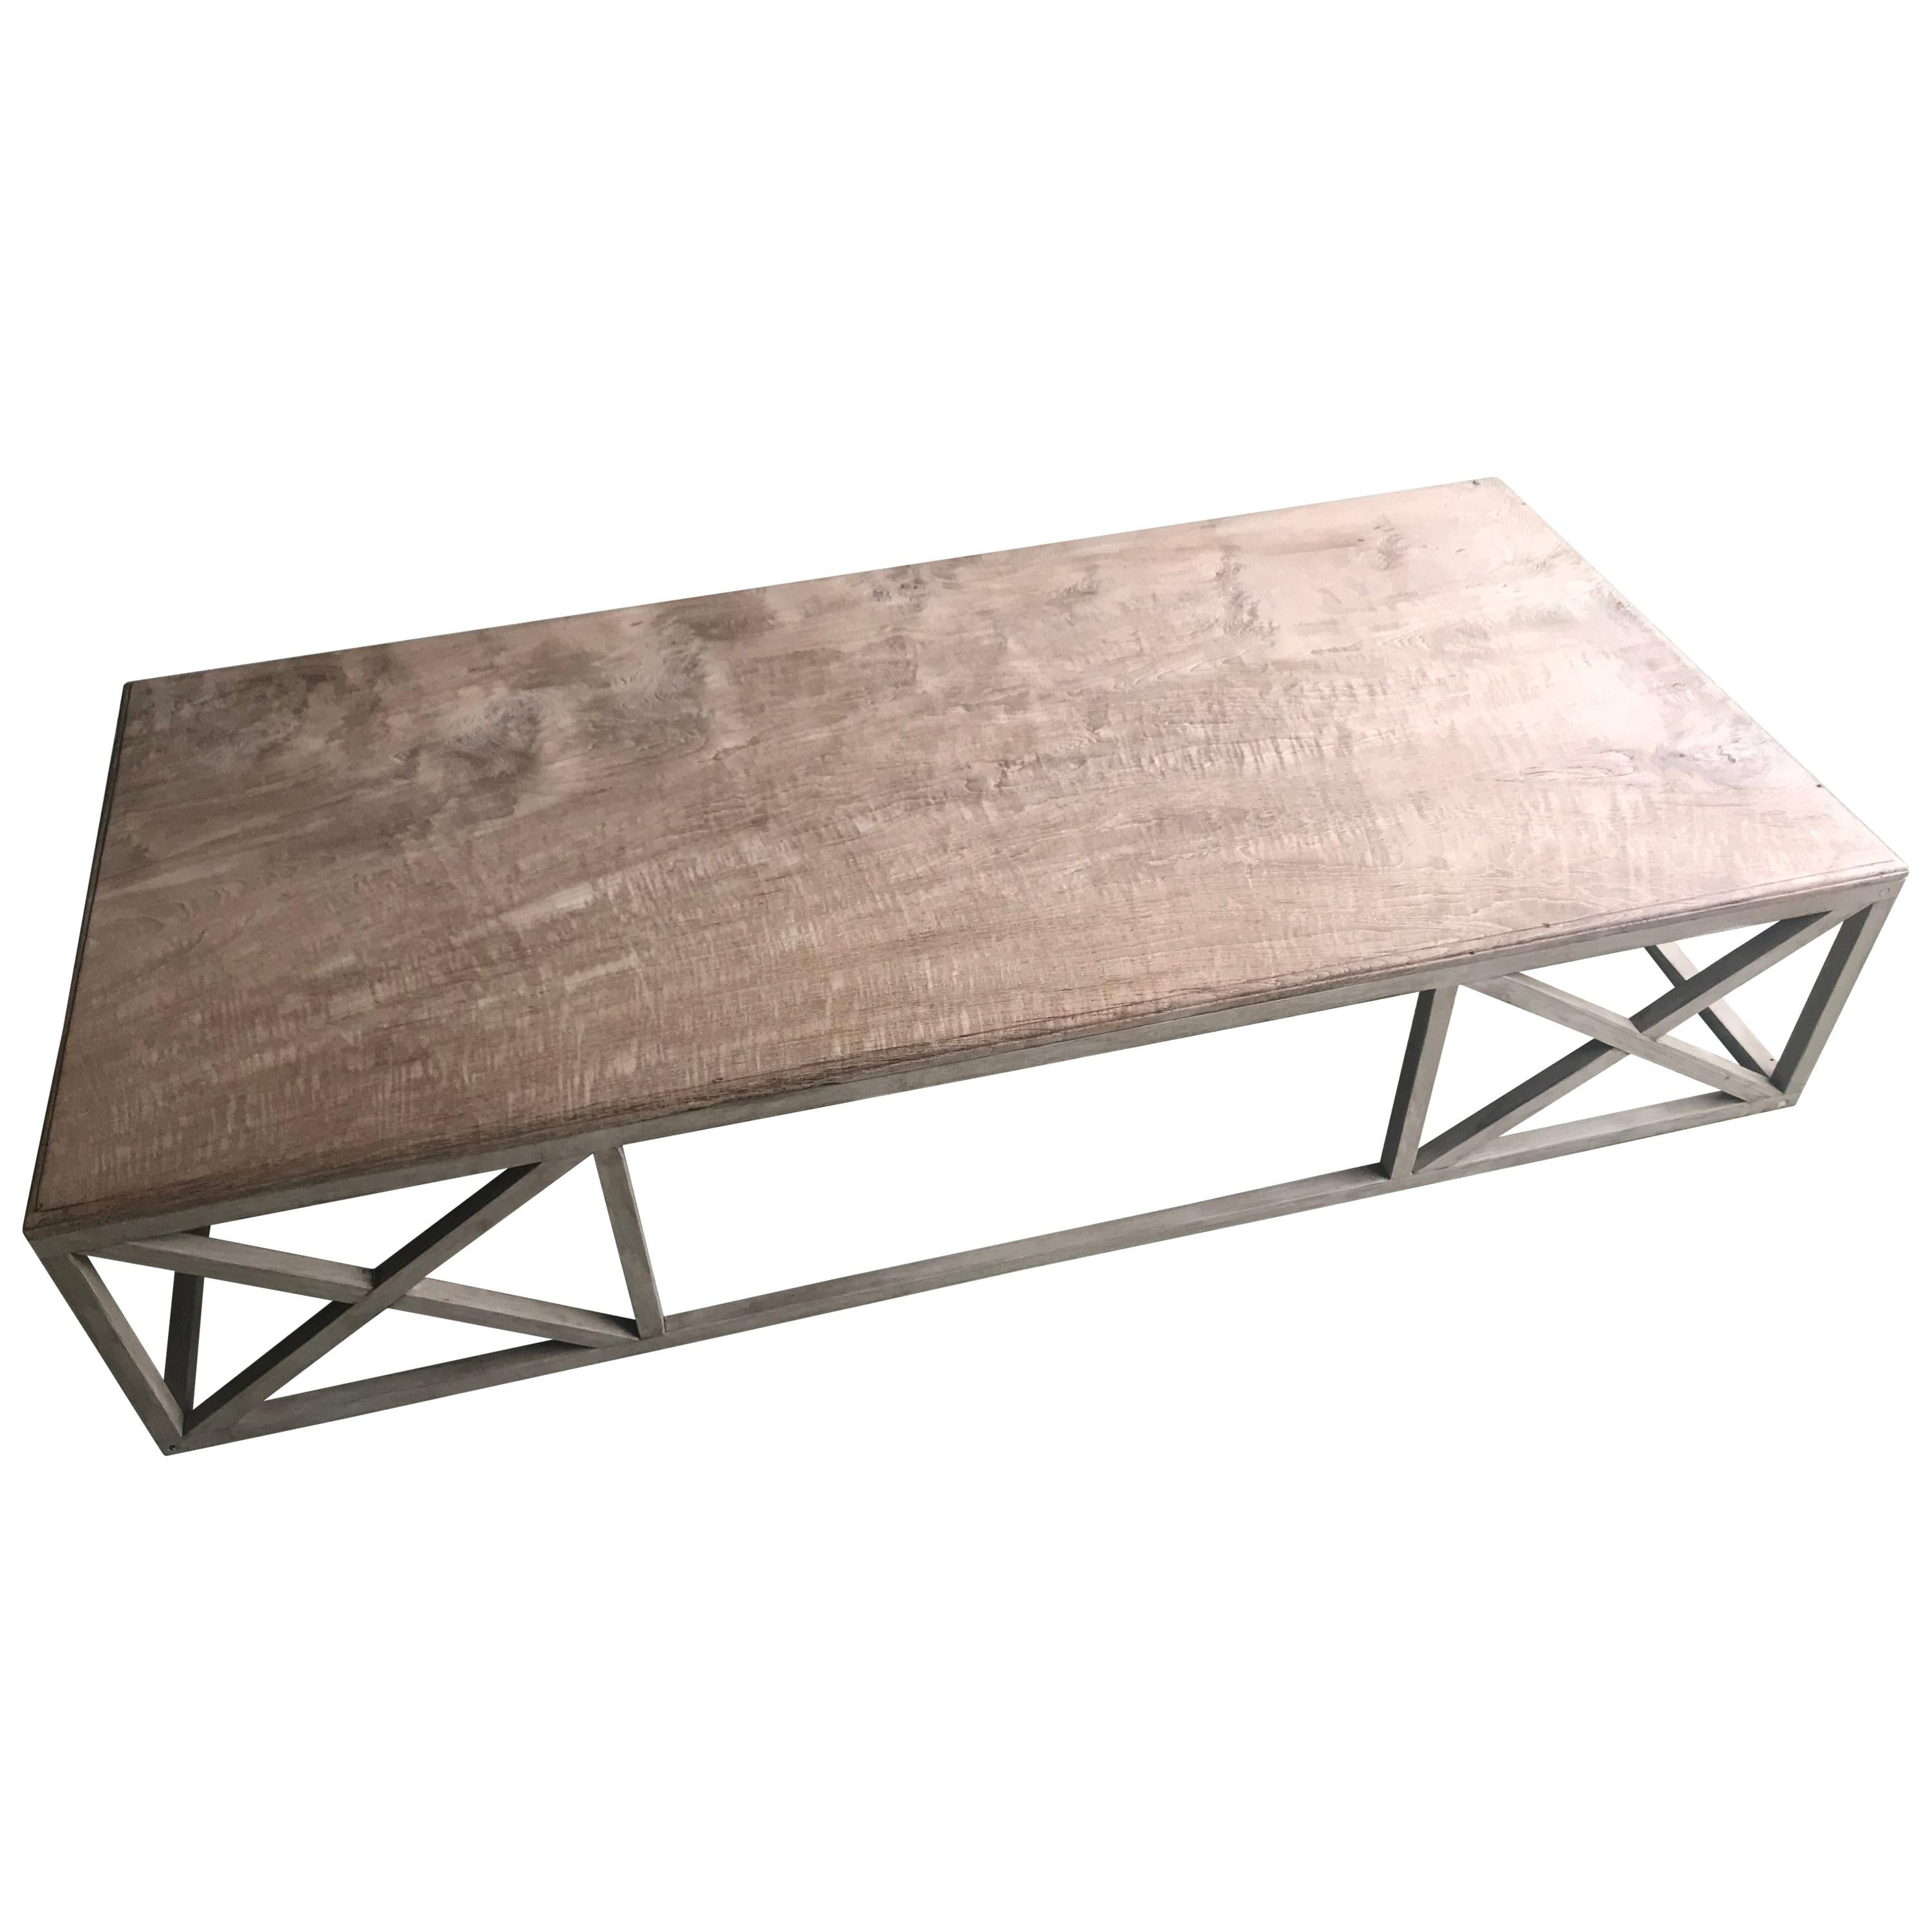 Wooden Coffee Table On An Wooden Base